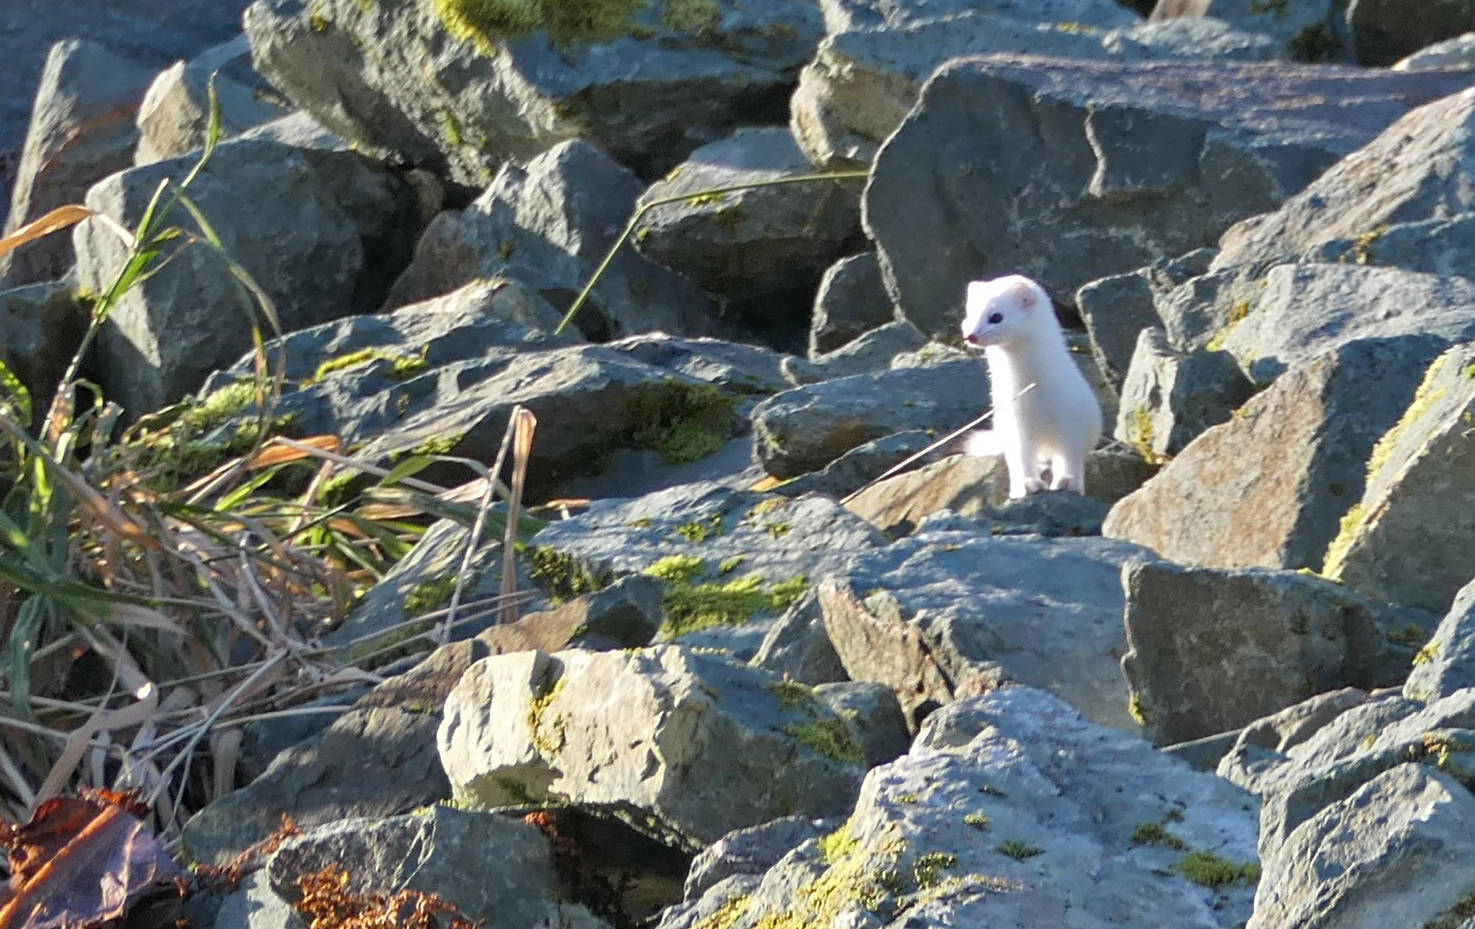 An ermine emerges to look around while exploring the crevices among the roadside rocks. While its white winter coat is conspicuous now, it will help it blend in with its surroundings during winter. (Courtesy Photo /David Bergeson)